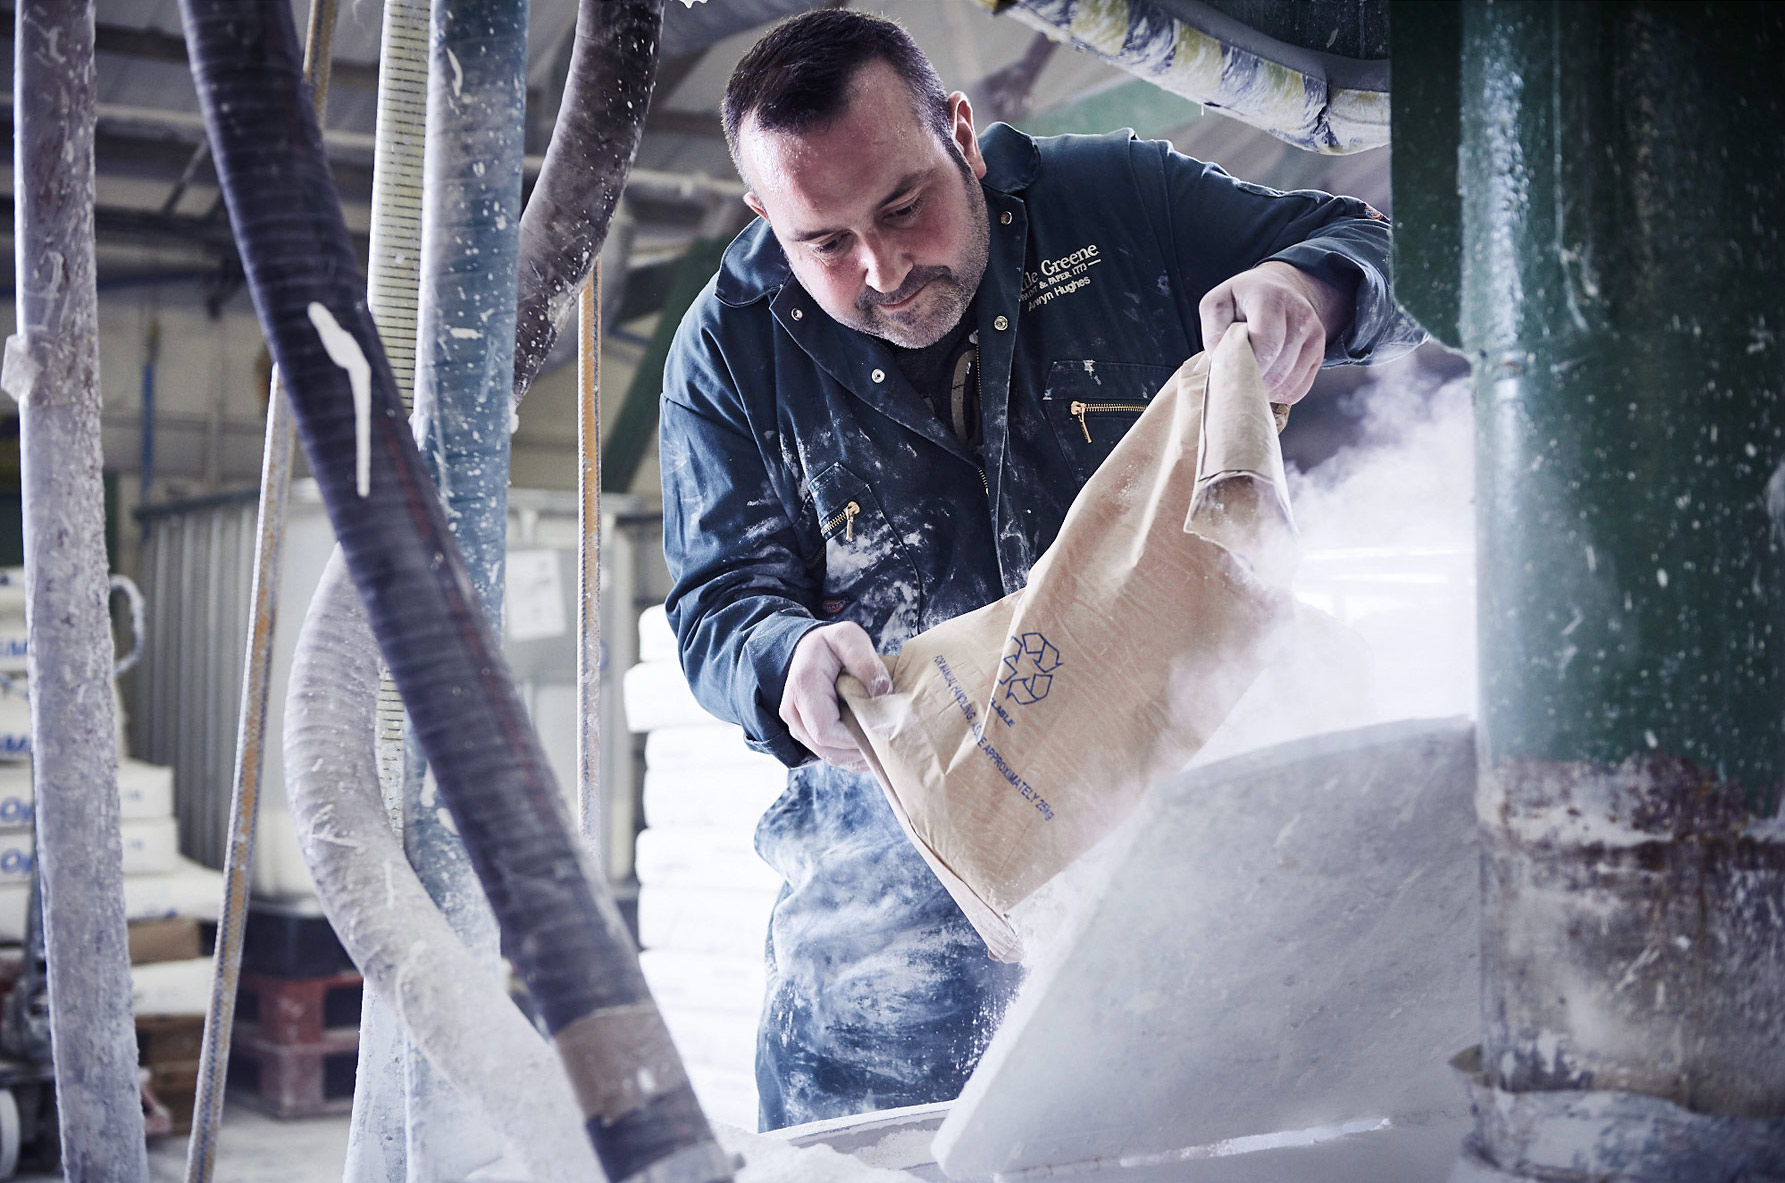 Paint factory photoshoot – a worker pours in the basic starting materials